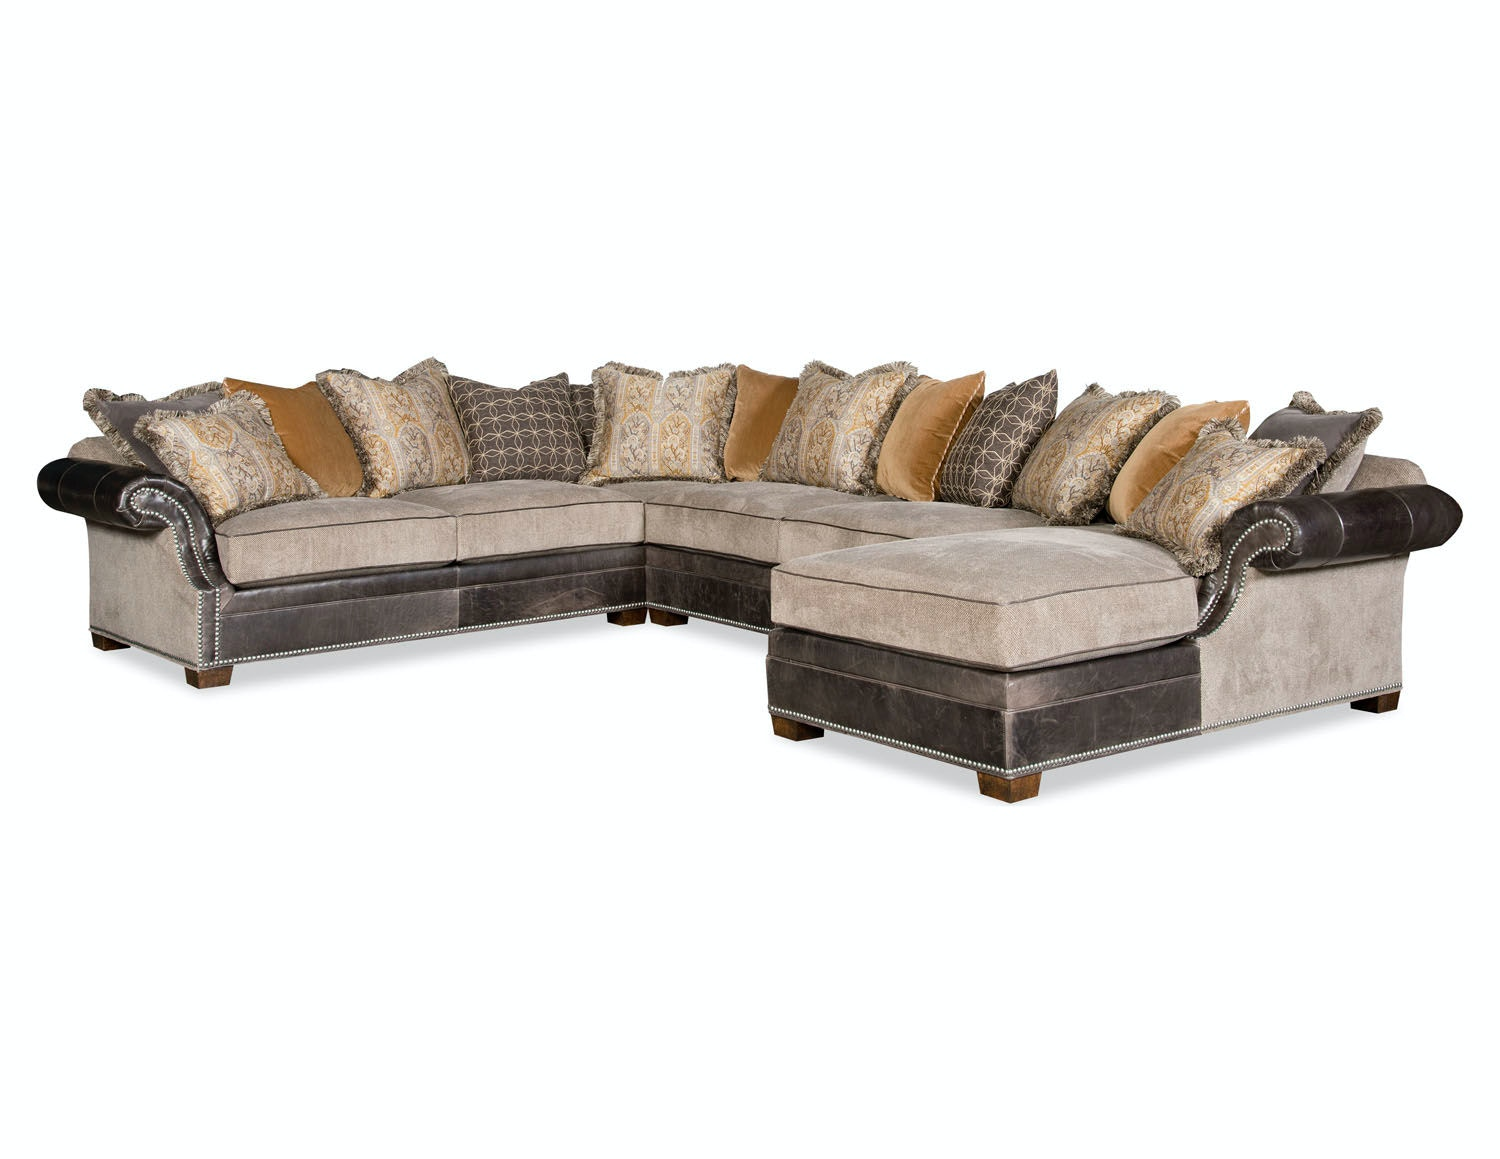 Paul Robert Ben Sectional JZ32 Sectional